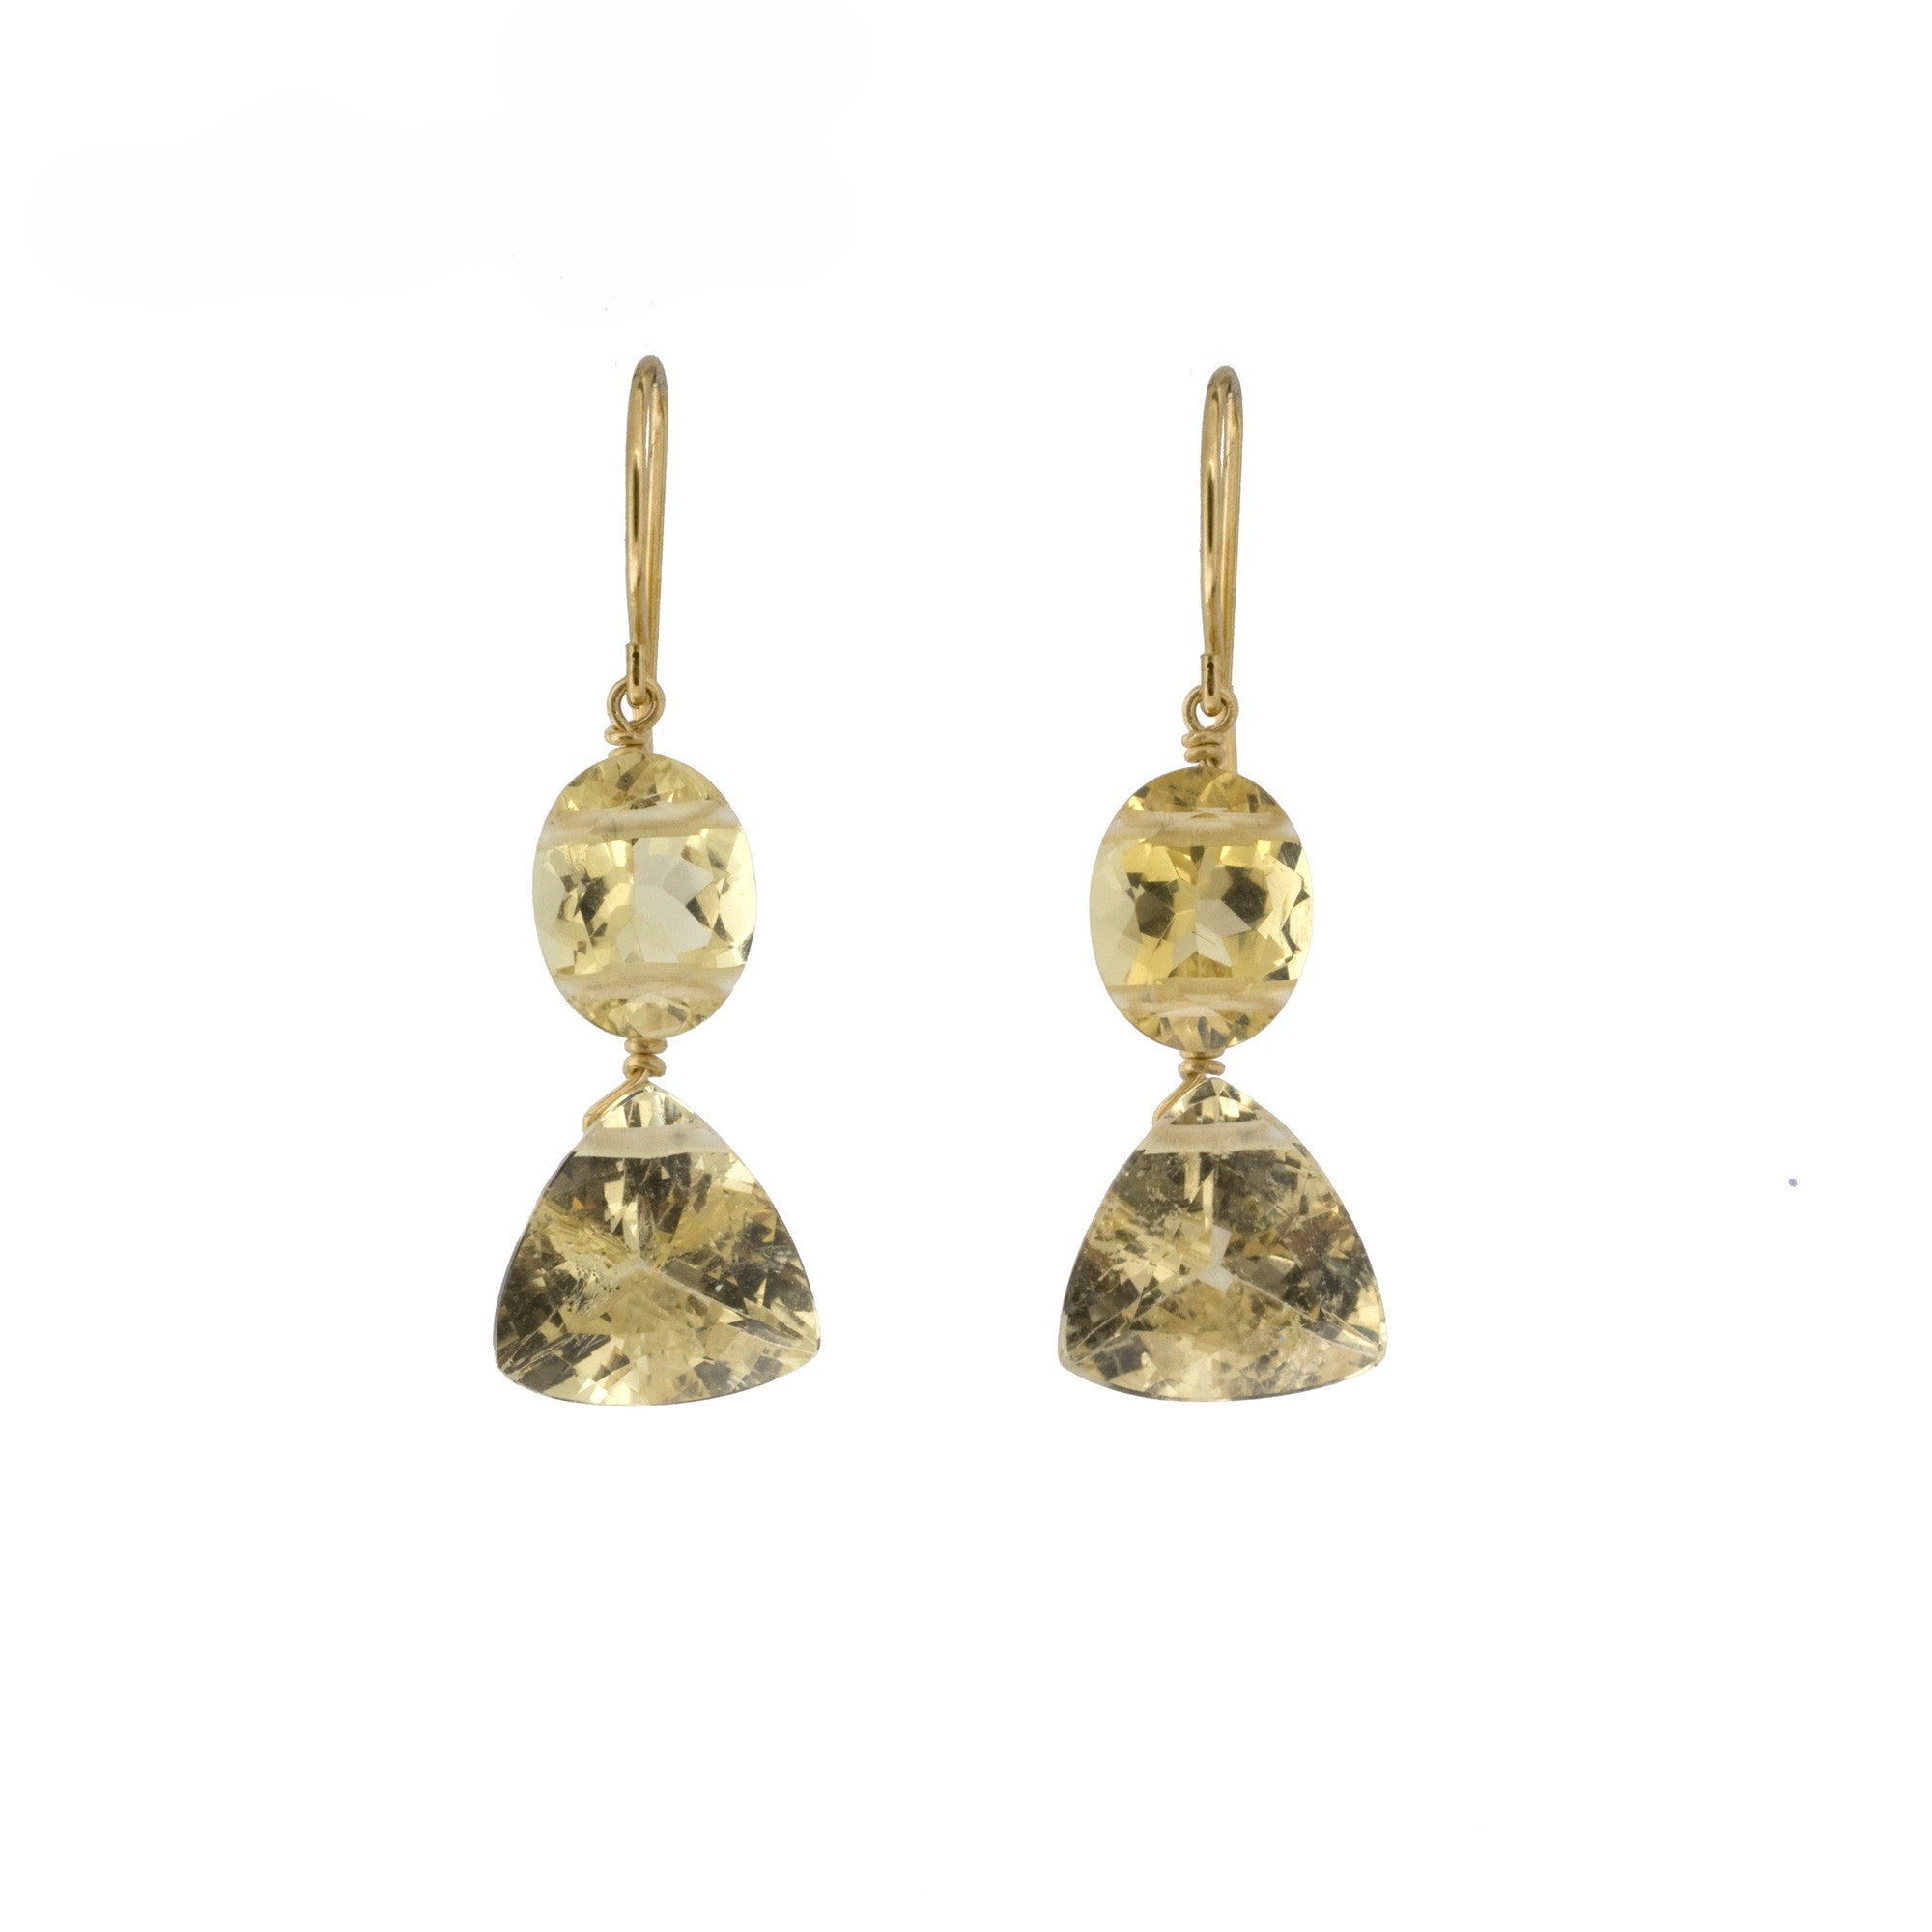 GABRIELLE II Golden Beryl Earrings